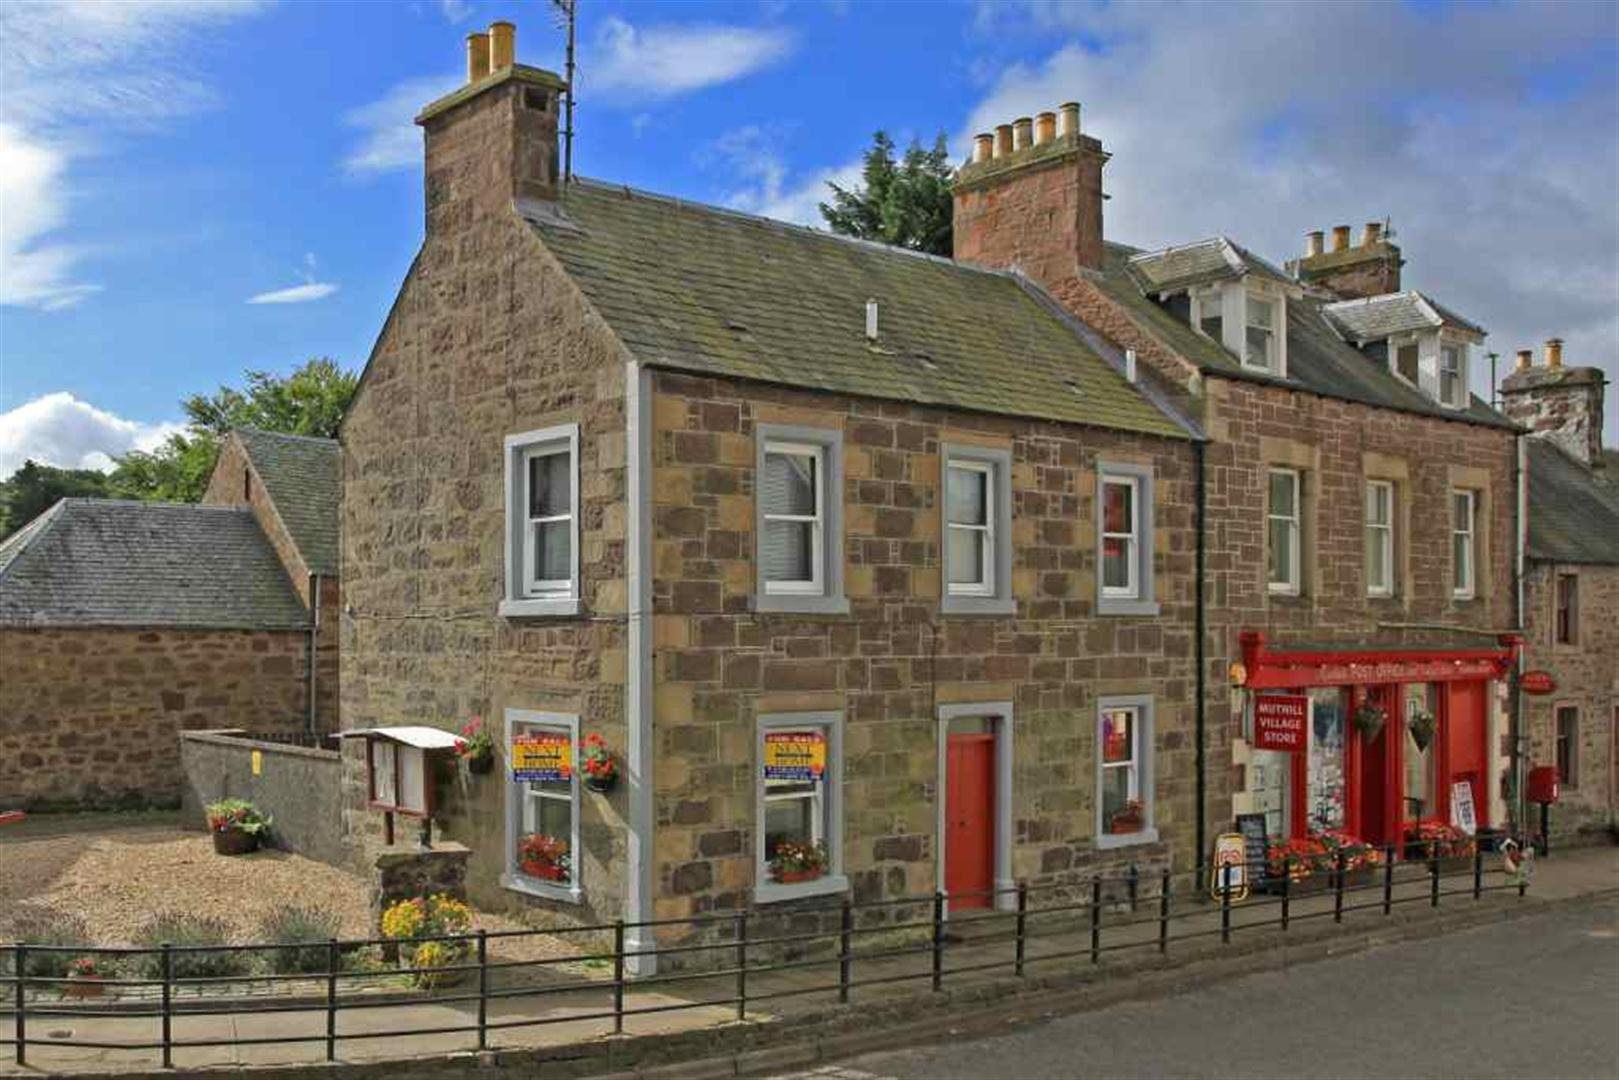 1A, Drummond Street, MUTHILL, Perthshire, PH5 2AN, UK